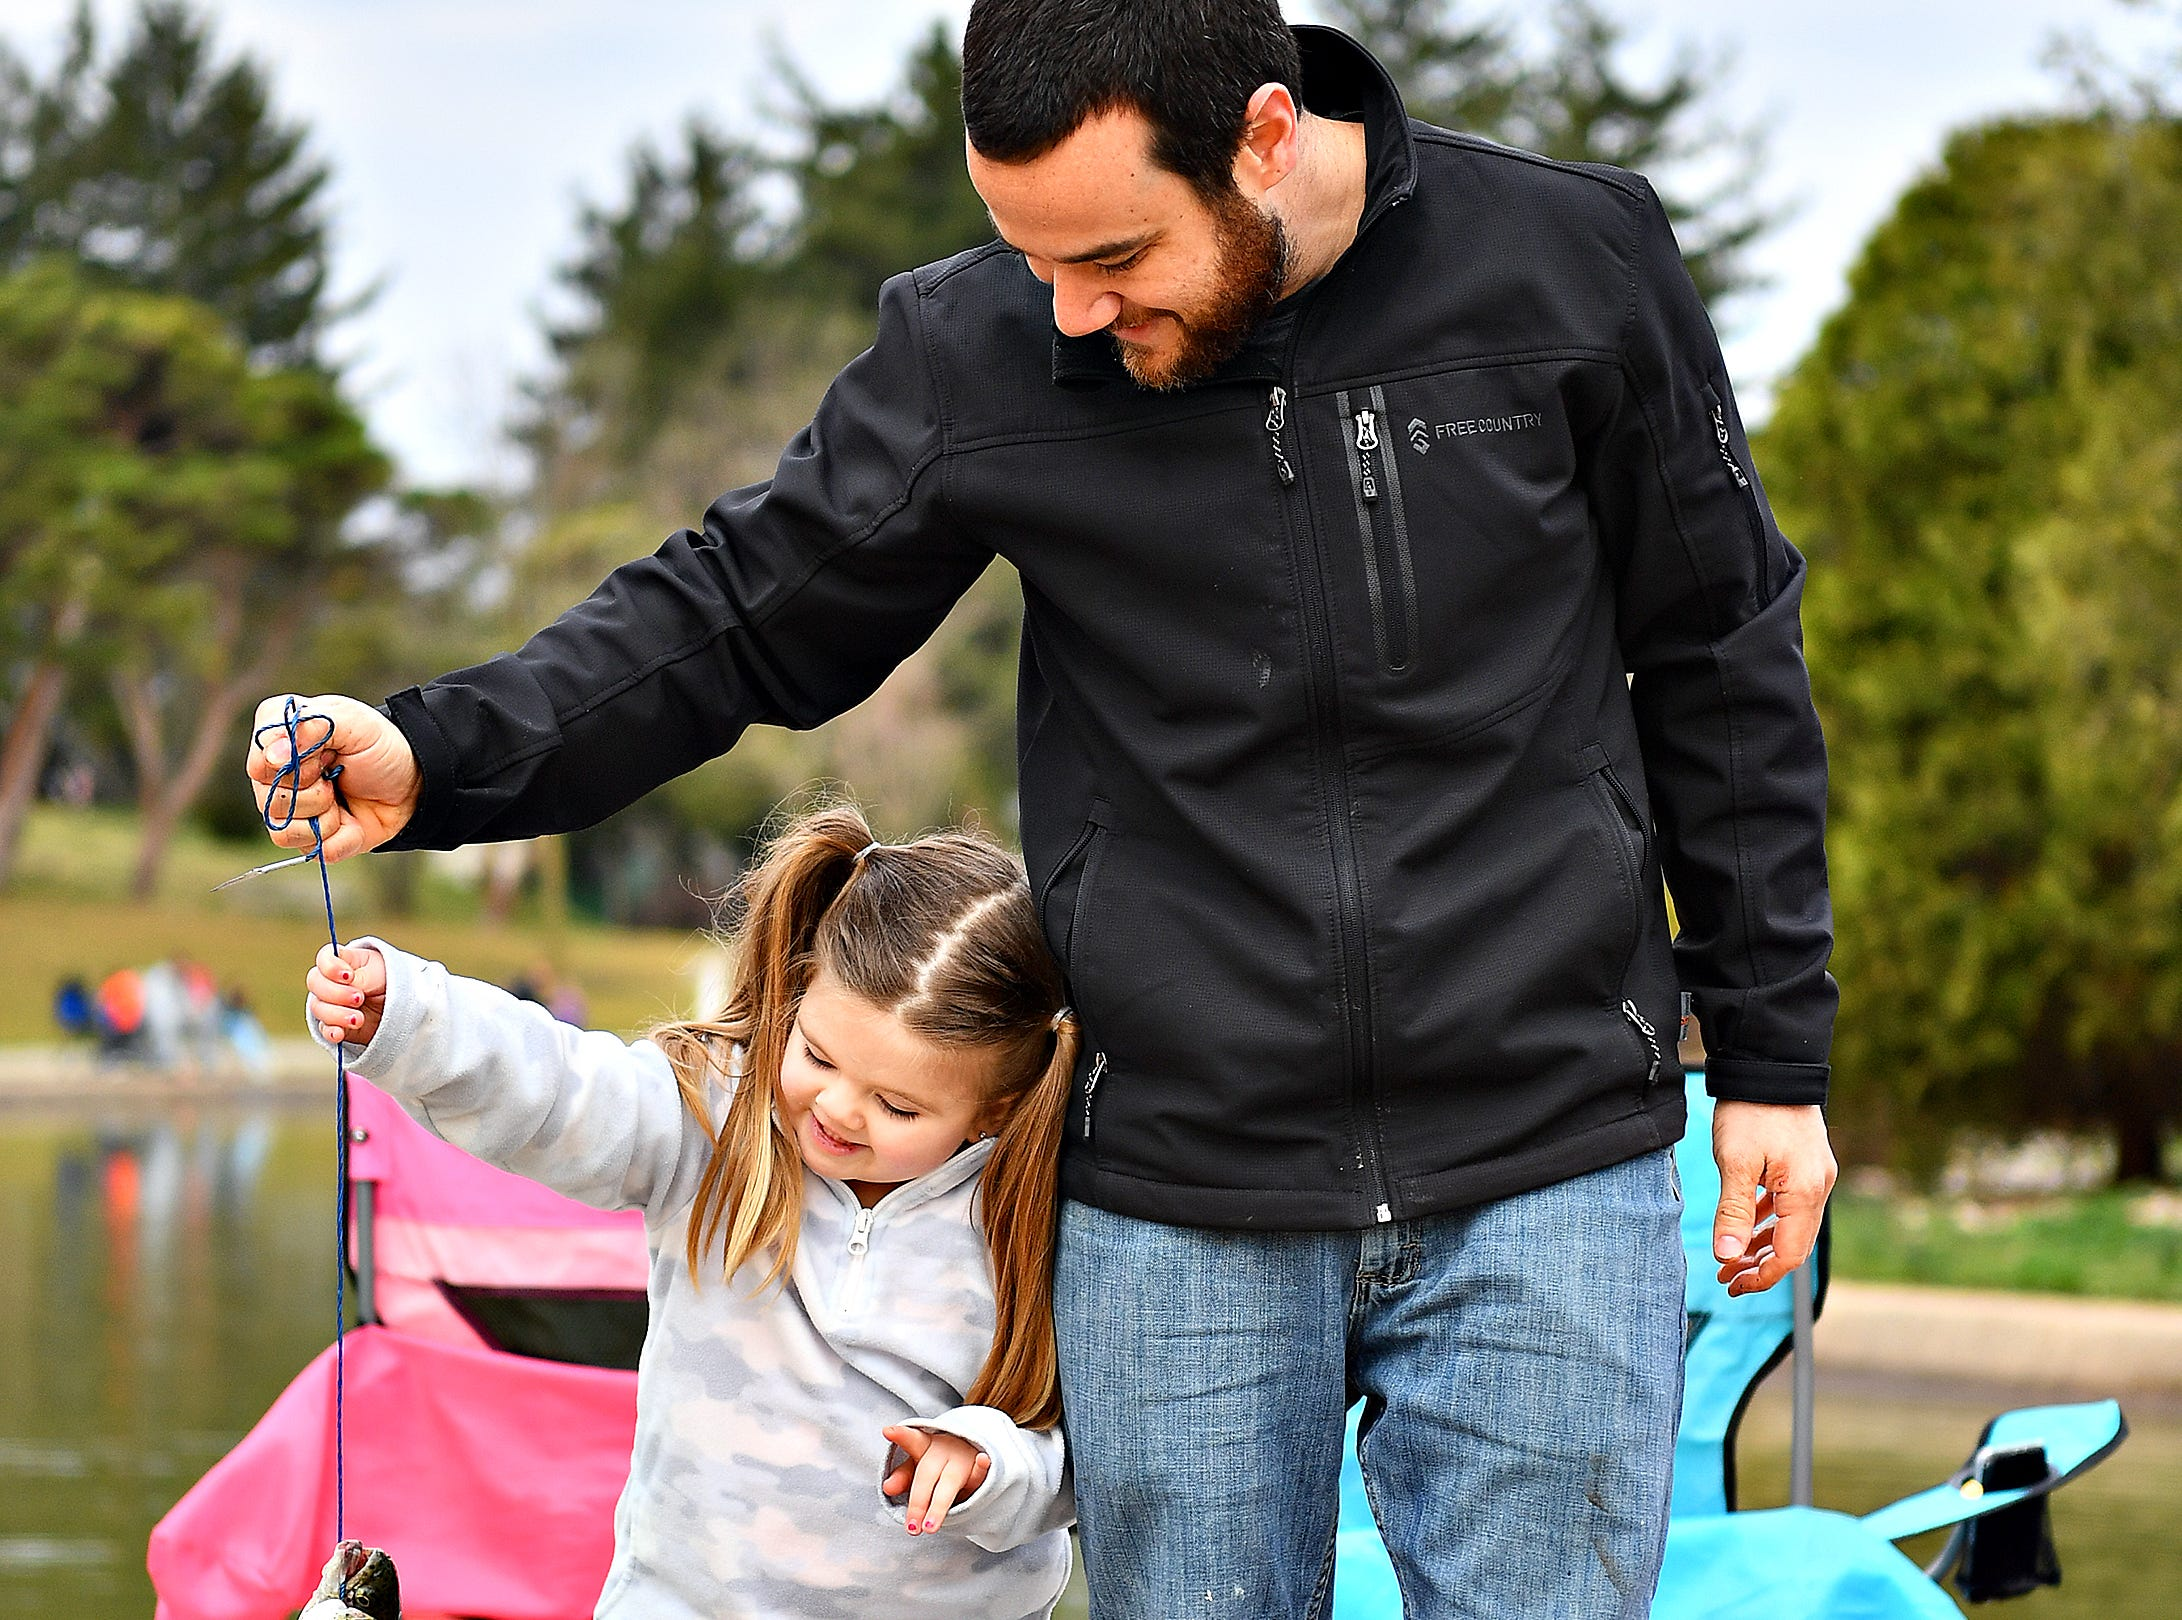 Daniel Bowen, right, of Spring Garden Township, and his daughter Charley Smith 4, carry the fish that they caught during the 21st Annual William Shaffer Trout Fishing Derby at Kiwanis Lake in York City, Saturday, March 30, 2019. Dawn J. Sagert photo